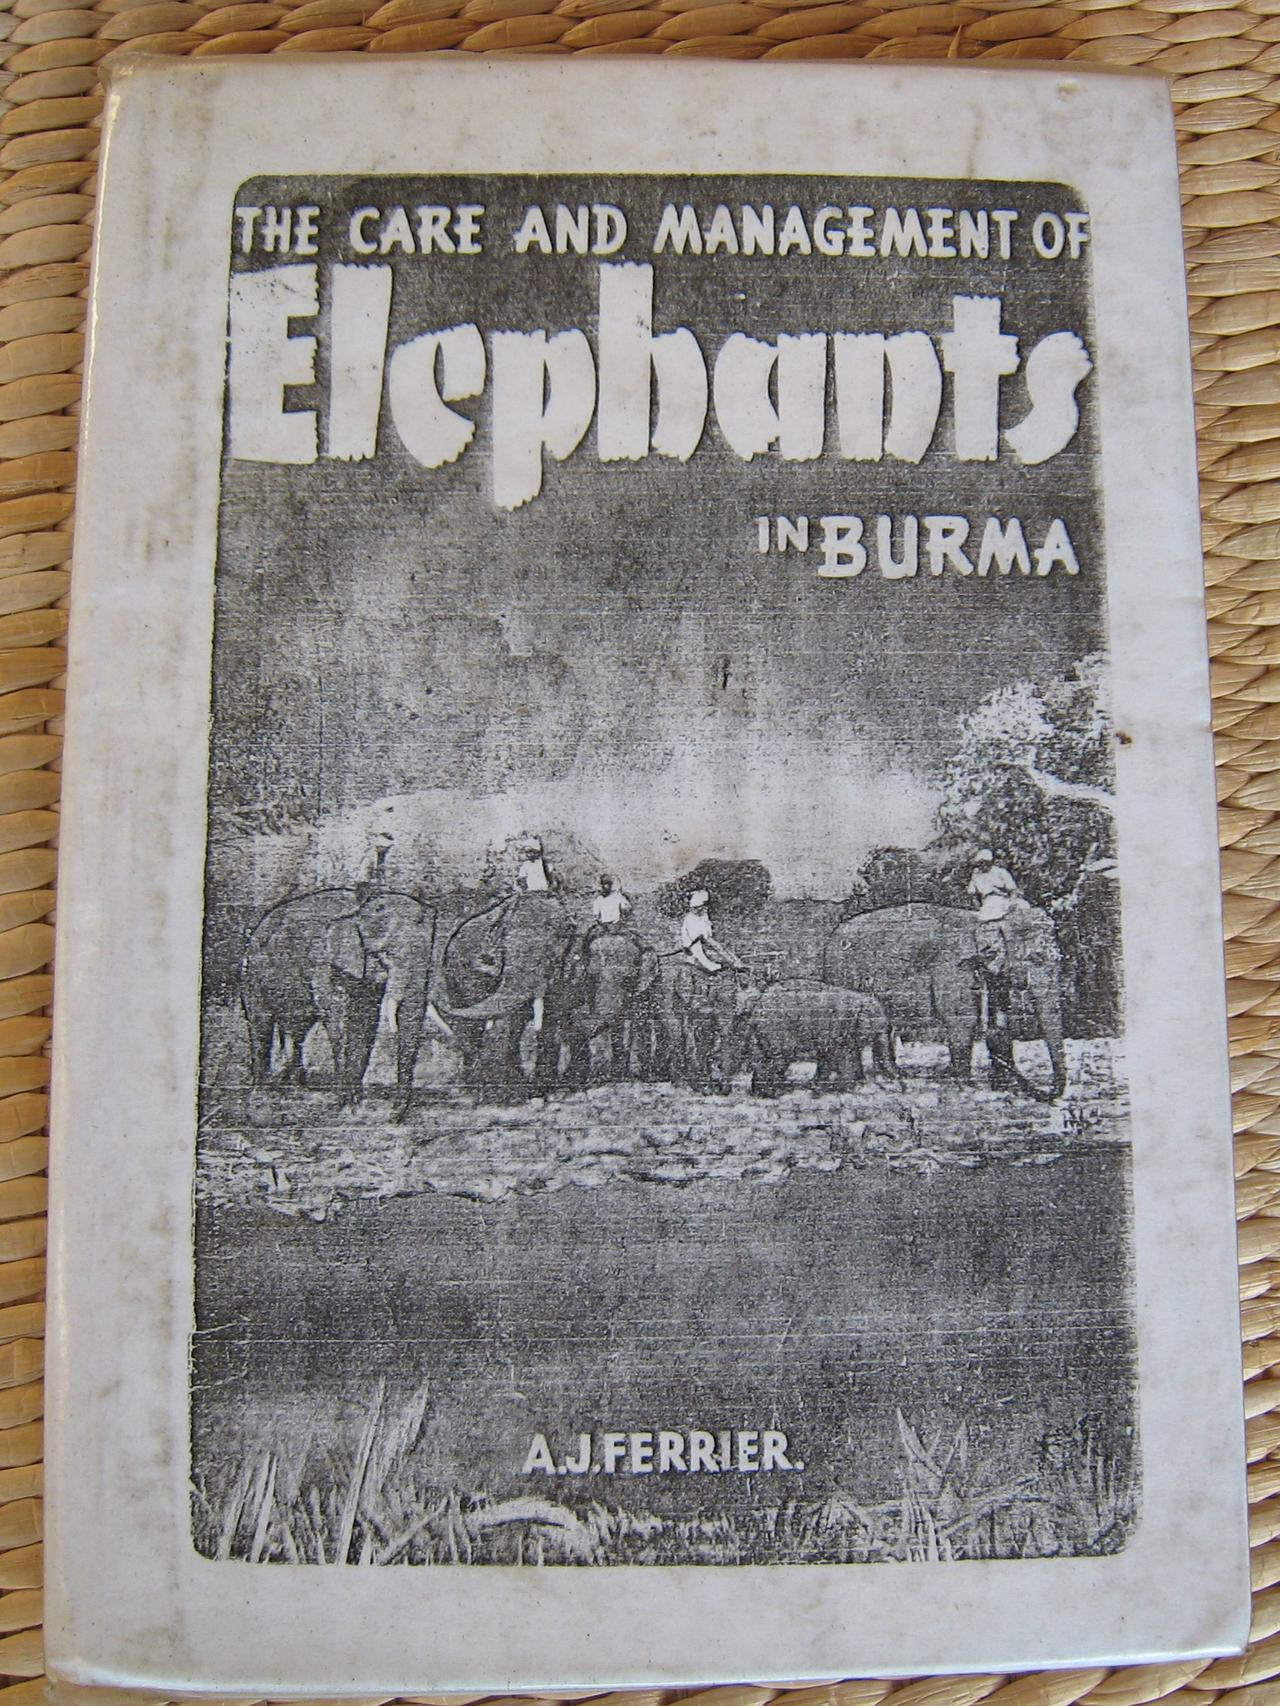 The care and management of Elephants in Burma by A.J. Ferrier. Picture: Supplied